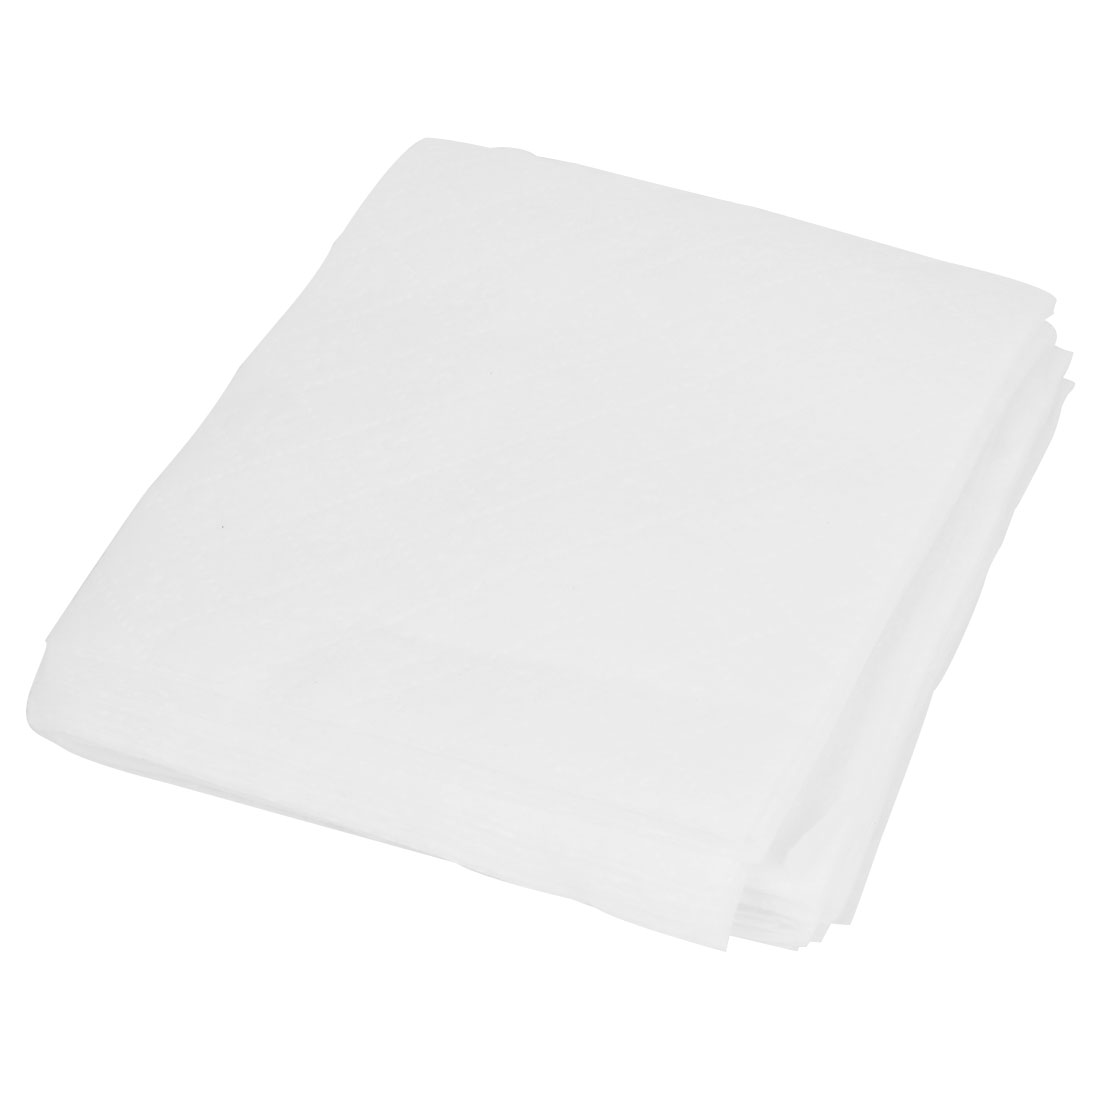 60 pcs White Square Shape Beauty Care Cleaning Dustproof Wet Wipes Towel